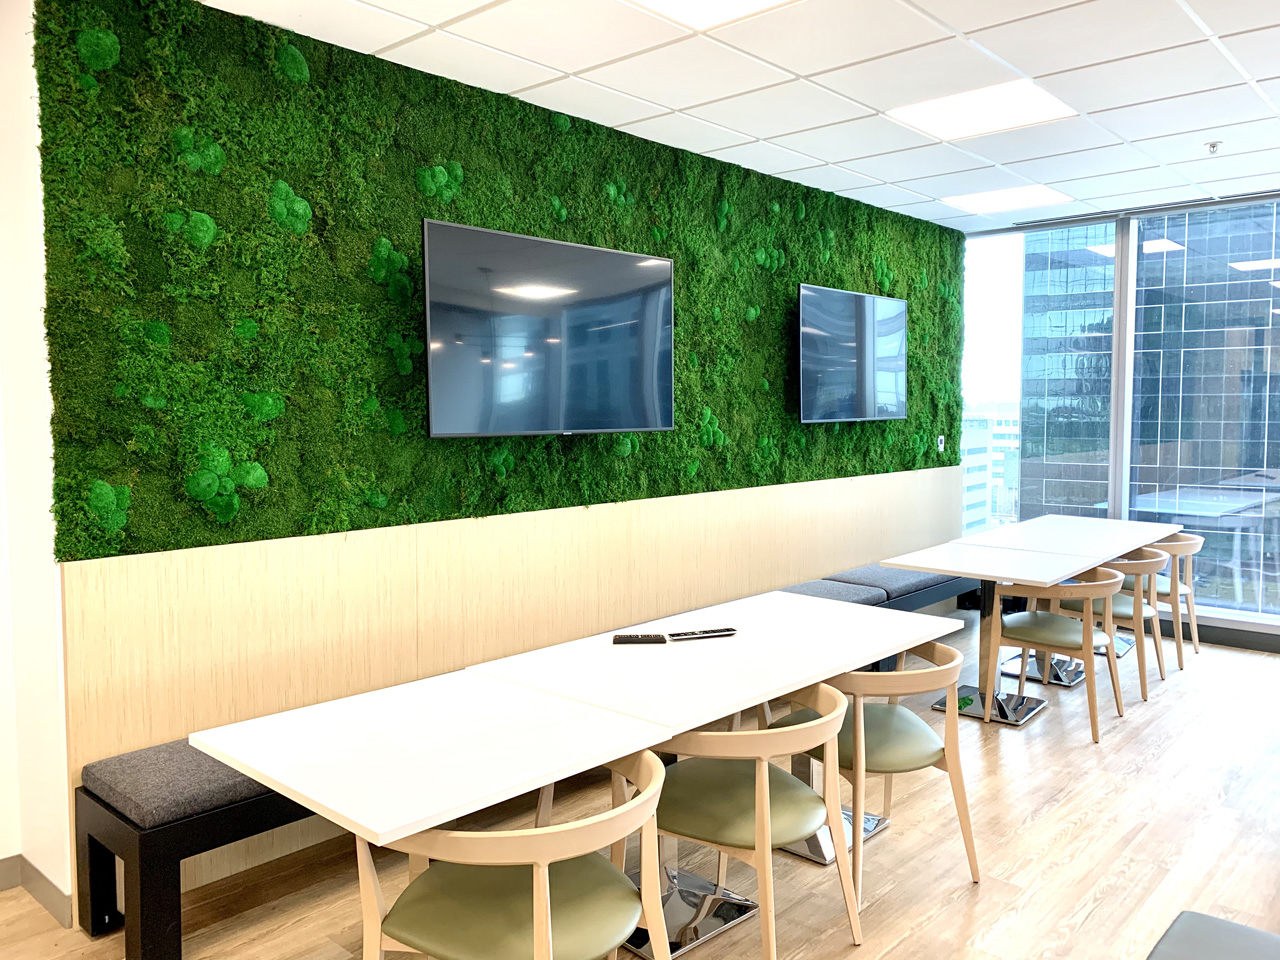 Moss Wall with TVs